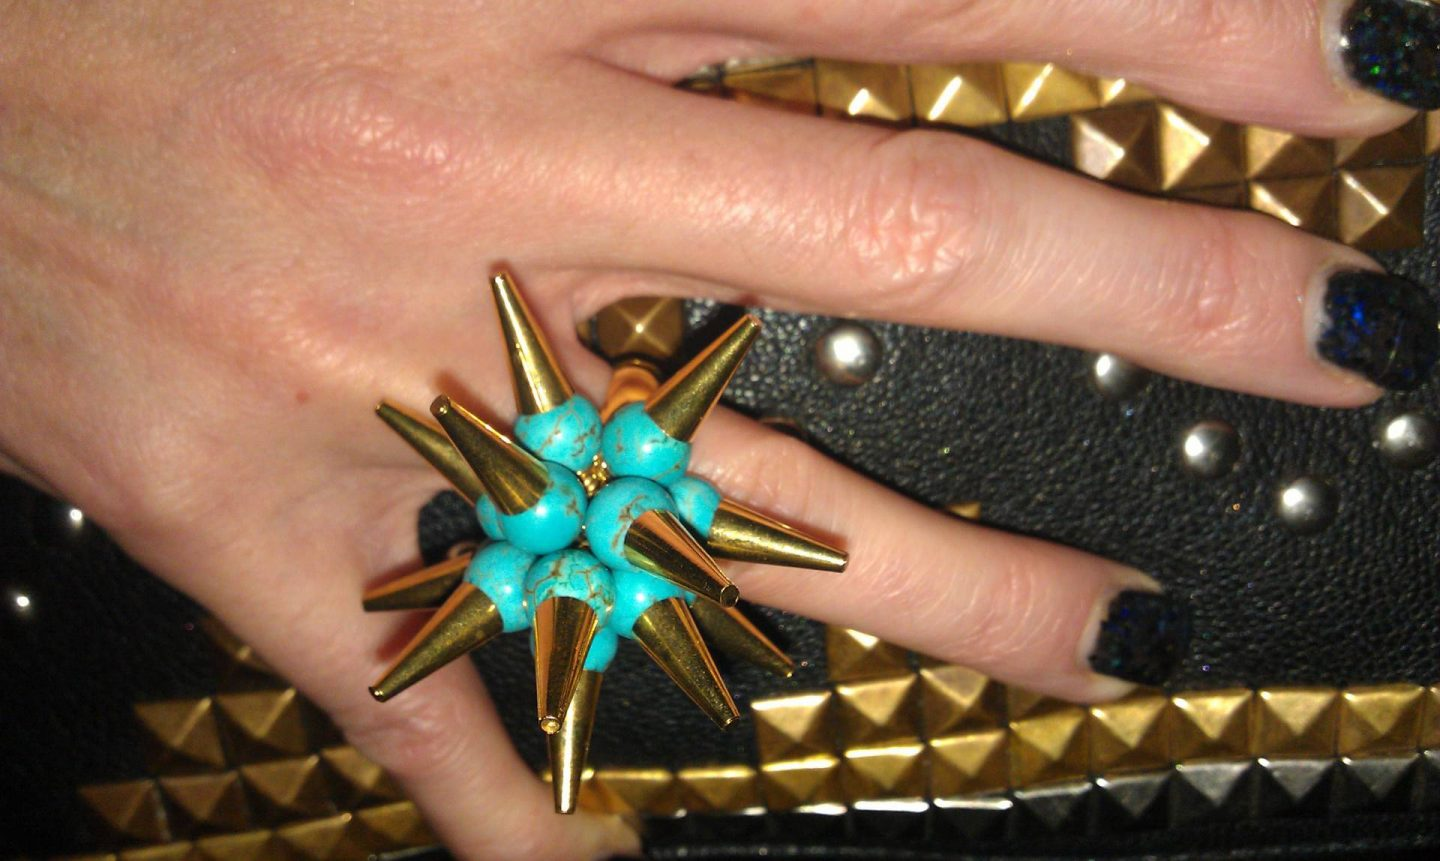 Merle O'Grady spike ring